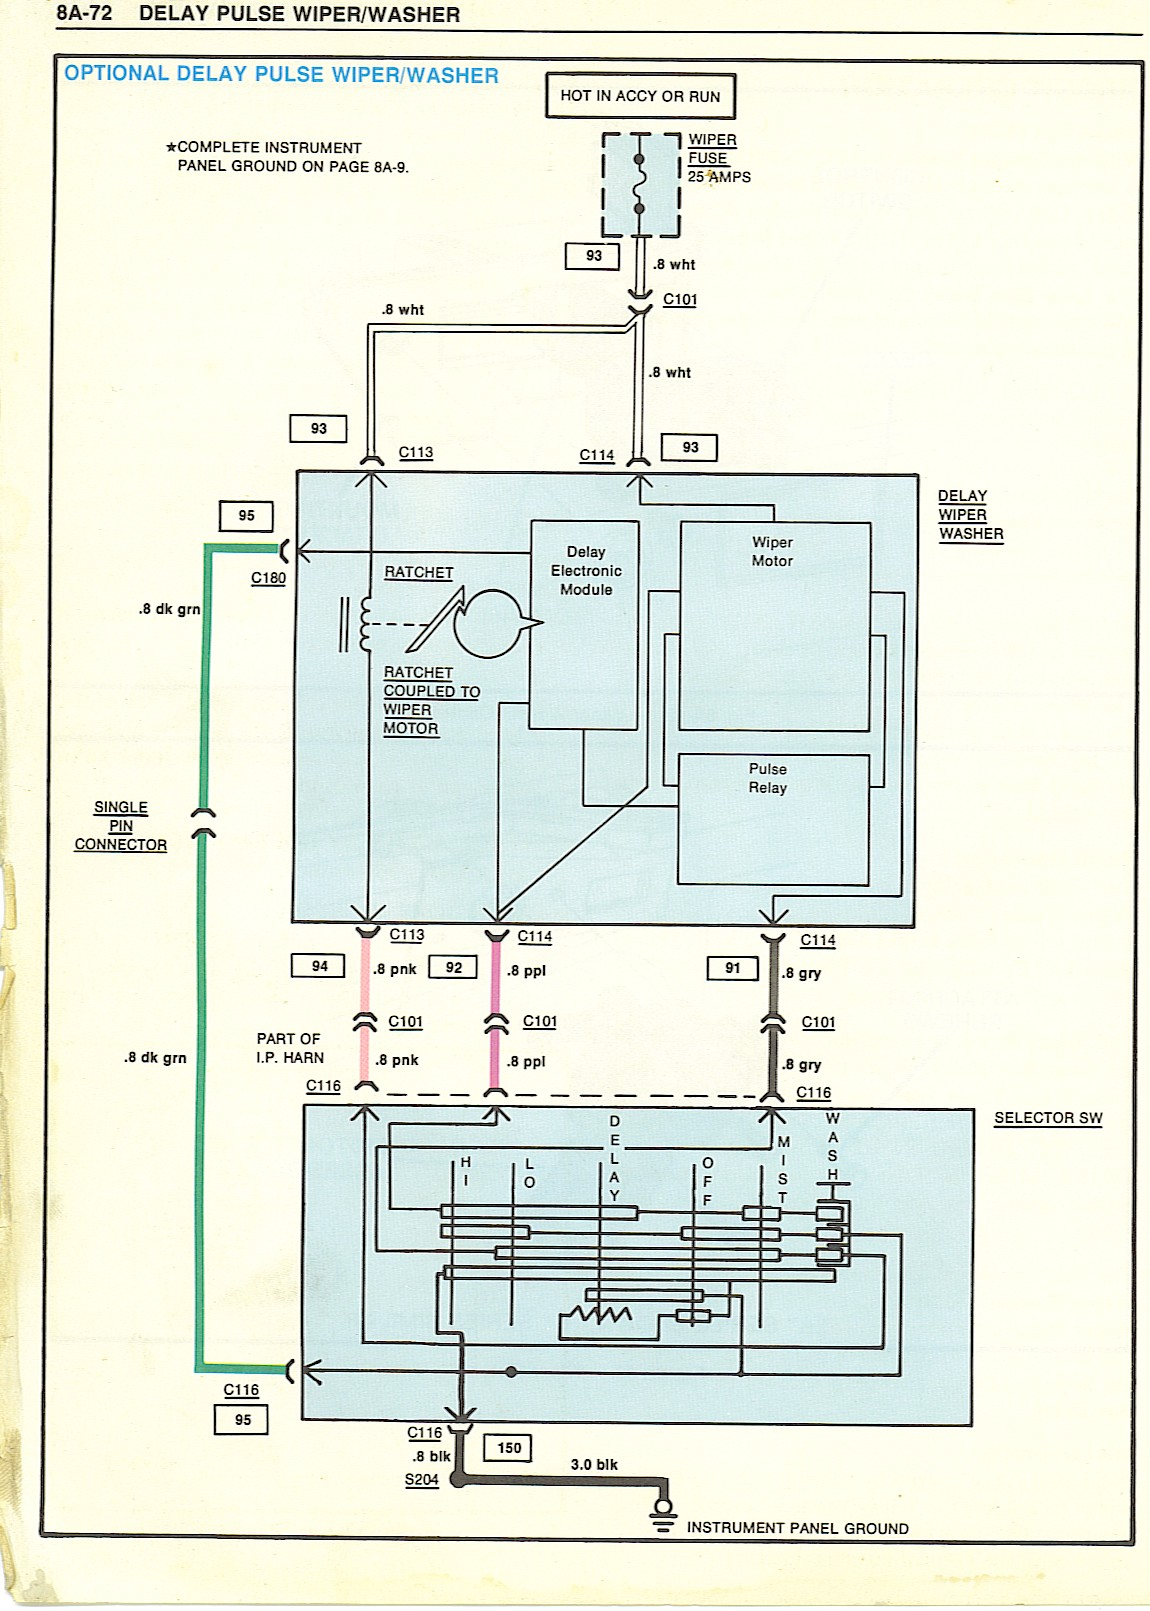 1987 el camino wiper wiring diagram BqlUvUp sterling truck wiring diagrams efcaviation com 1999 sterling truck wiring diagram at panicattacktreatment.co